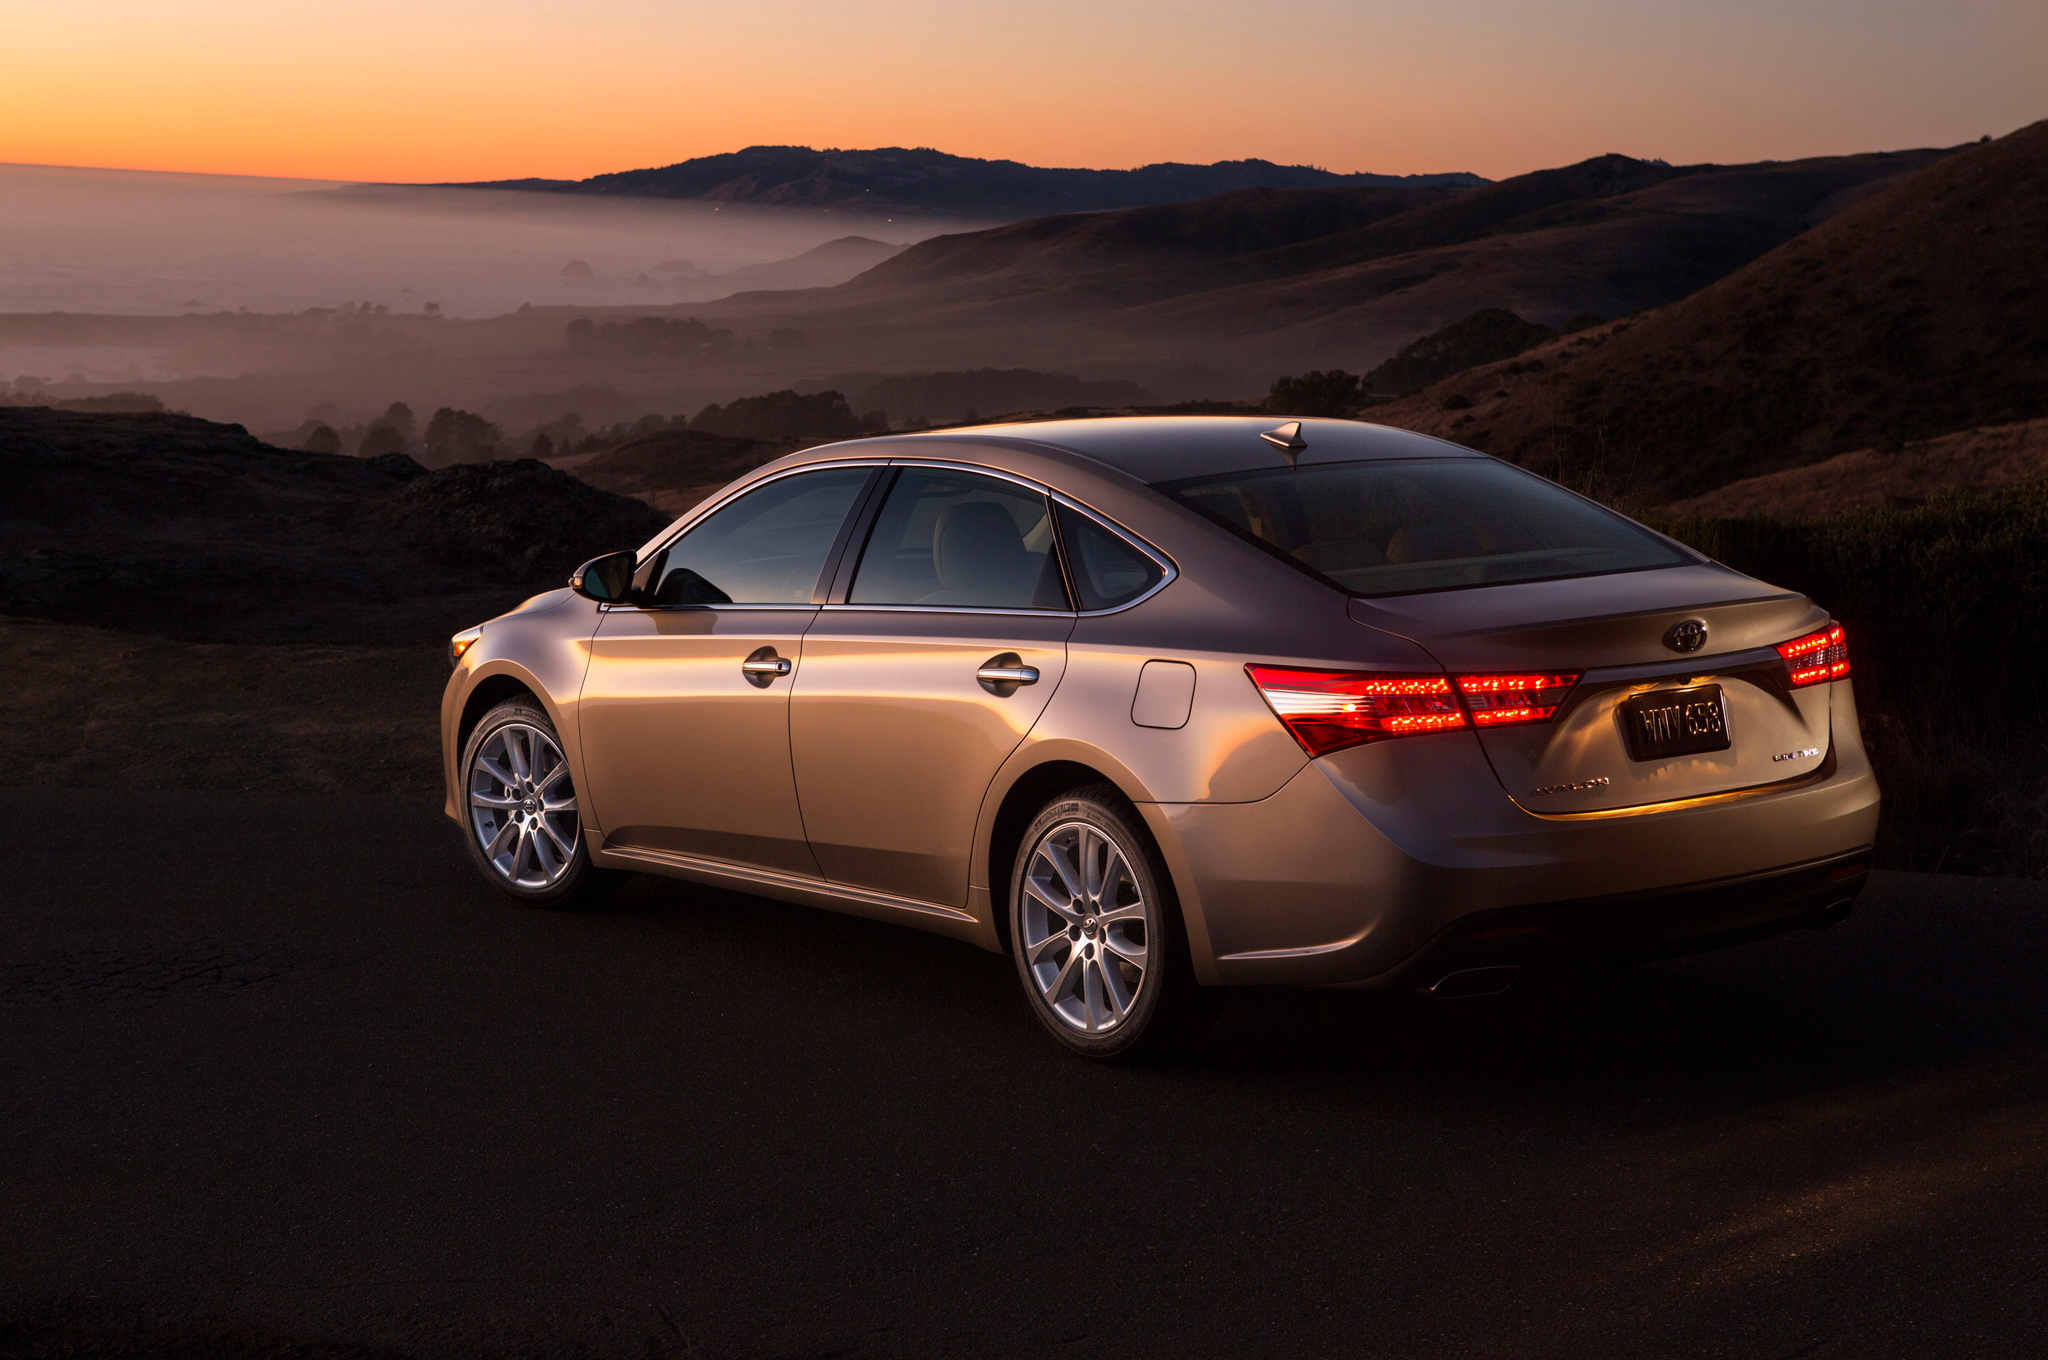 rx toyota review avalon lexus reports stillb from more consumer